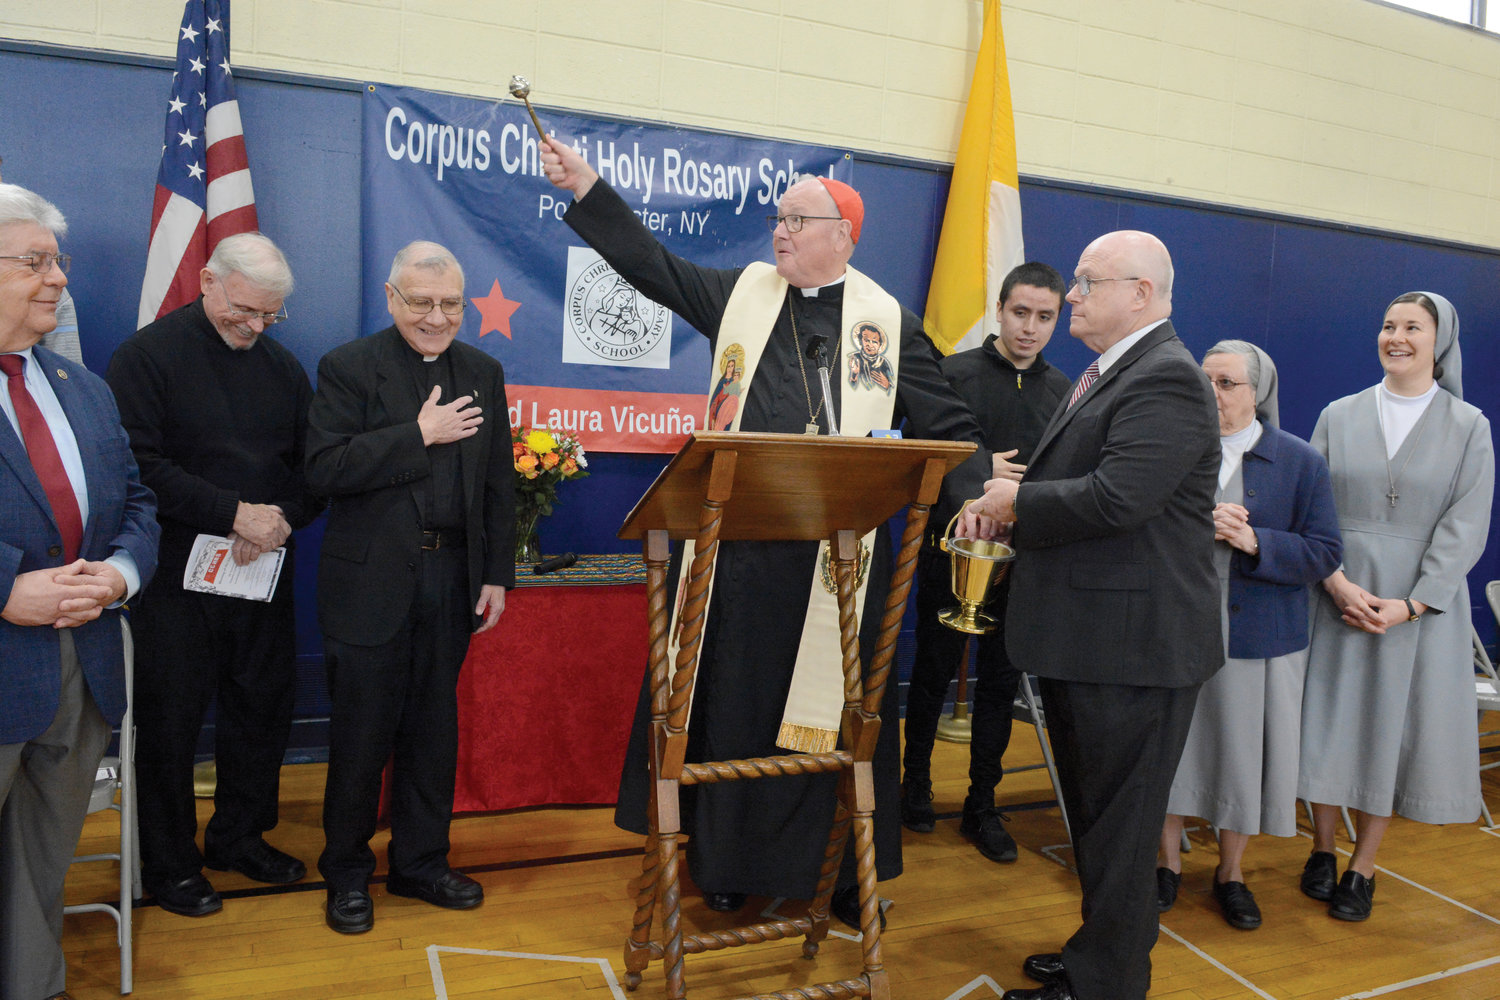 BLESSING—At a Jan. 31 gathering to celebrate the new universal pre-k program at Corpus Christi-Holy Rosary School in Port Chester, Cardinal Dolan blesses the Blessed Laura Vicuña campus and those attending the ceremony. Assisting was Michael Deegan, foreground, who is superintendent of schools in the archdiocese. The others, from left, are Port Chester Mayor Richard Falanka; Father John Grinsell, S.D.B., of St. John Bosco parish in Port Chester; Father Patrick Angelucci, S.D.B., pastor of St. John Bosco; Santiago Izquierdo, a seminarian from the Archdiocese of Philadelphia; Sister Lise Parent, F.M.A., school president; and Sister April Hoffman, F.M.A., second-grade teacher. There are 175 students and nine teachers in the all-day UPK program, which opened in September.